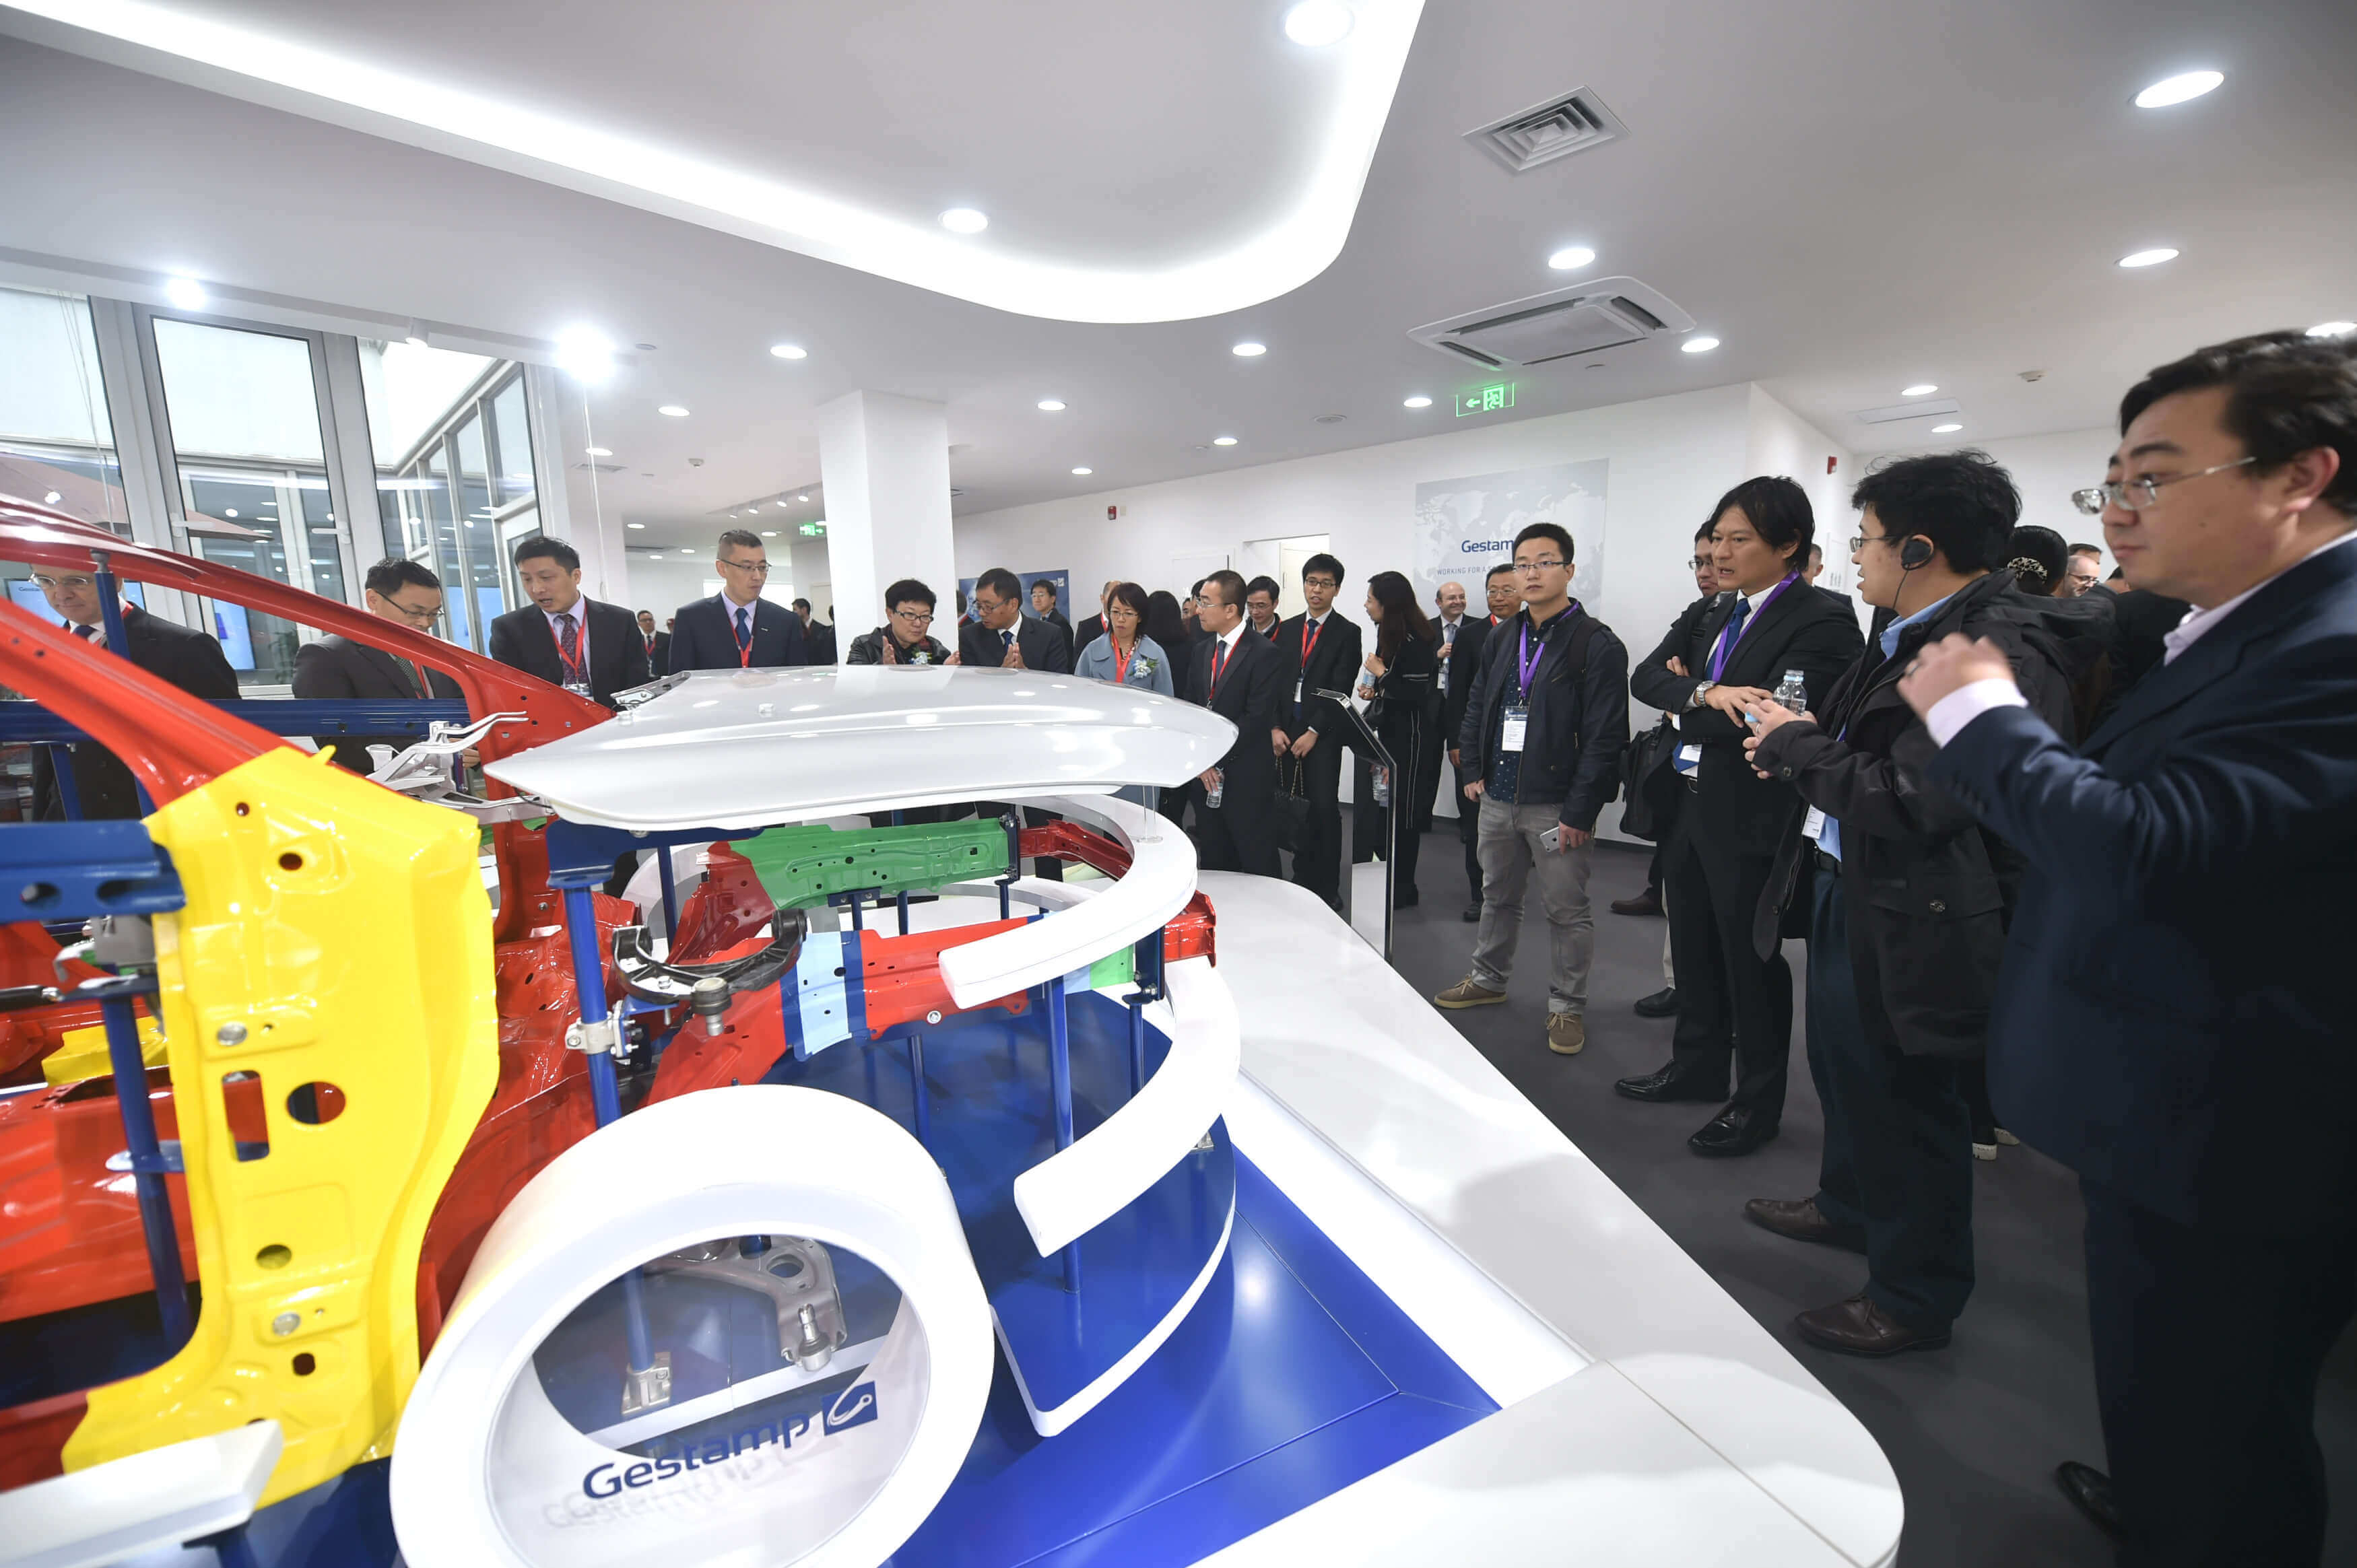 Gestamp inaugurates a new R&D center in Shanghai